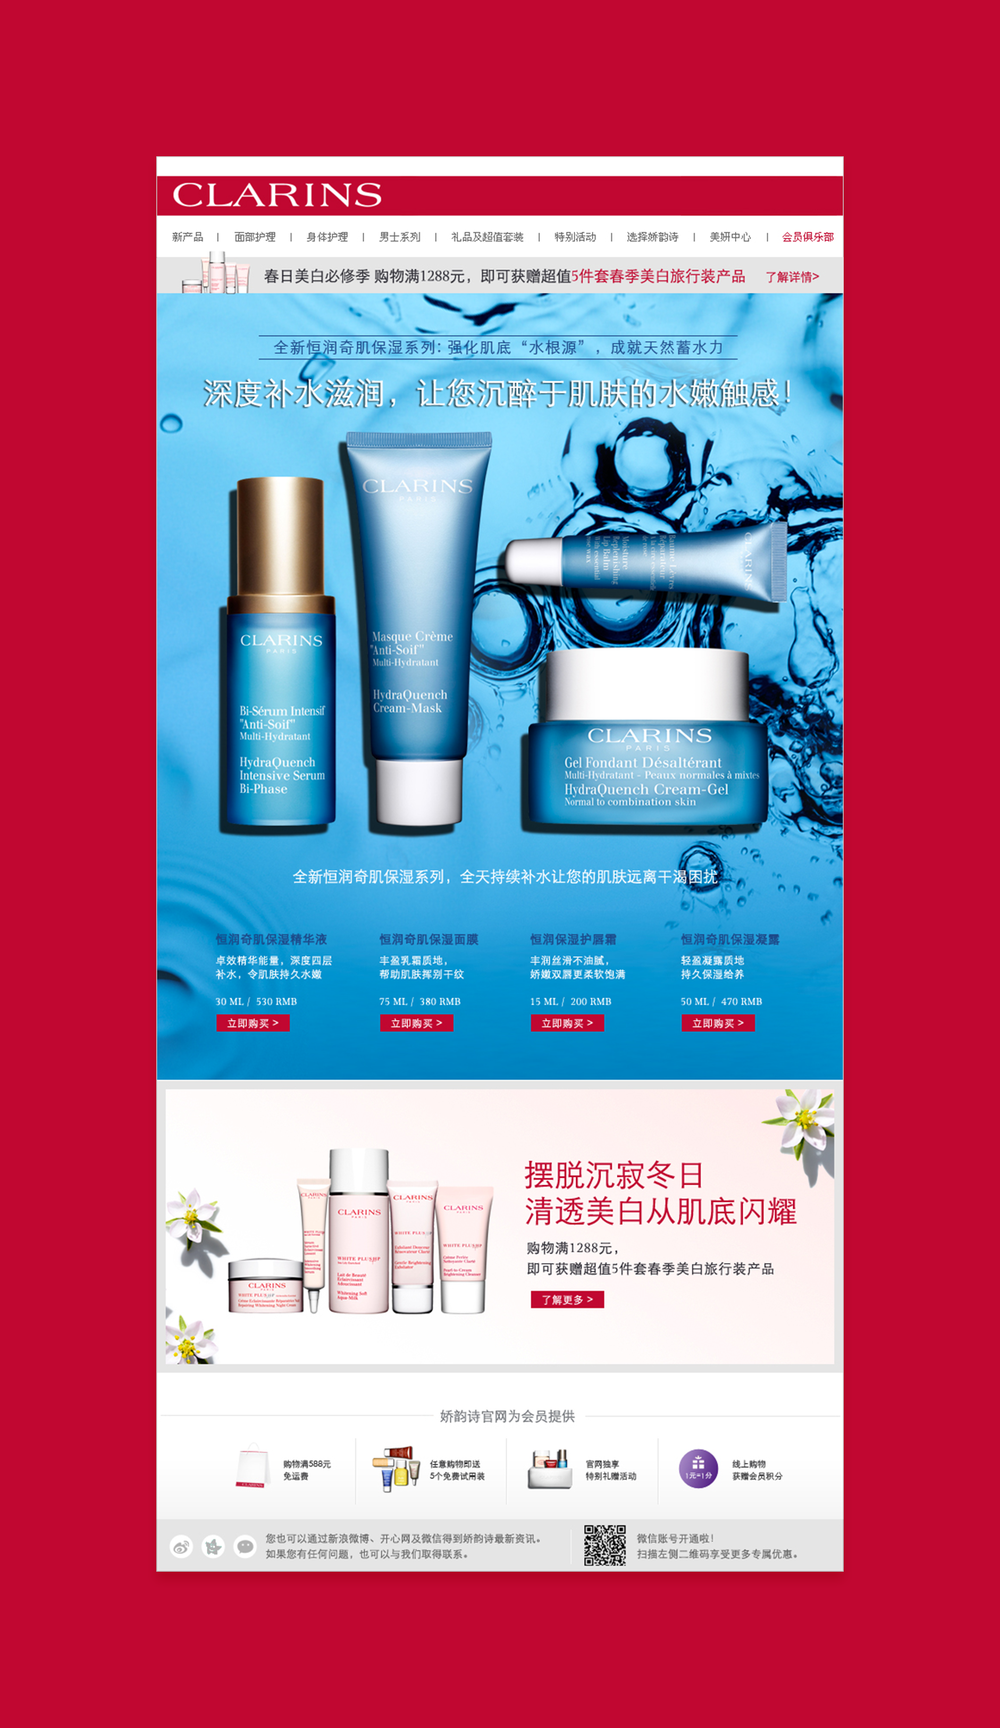 Clarins-1.png